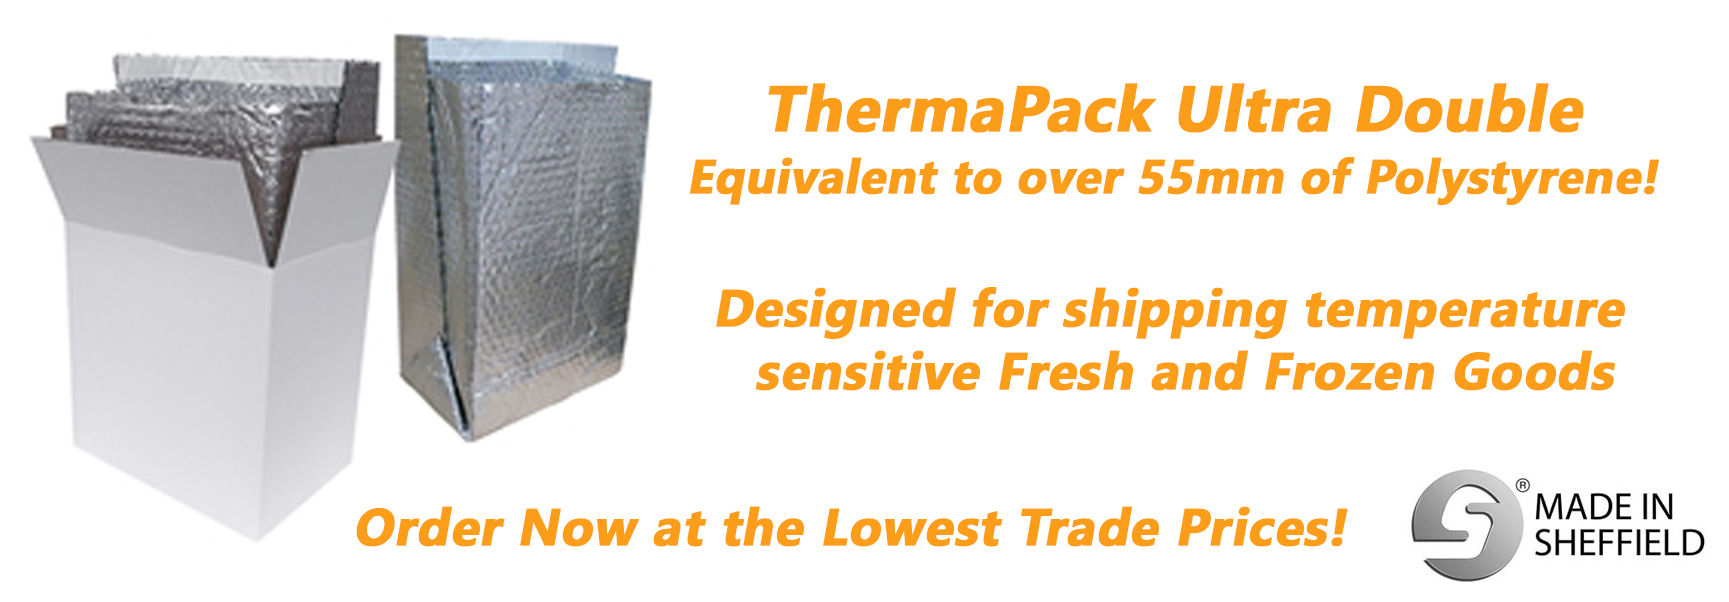 ThermaPack Double Box Liners